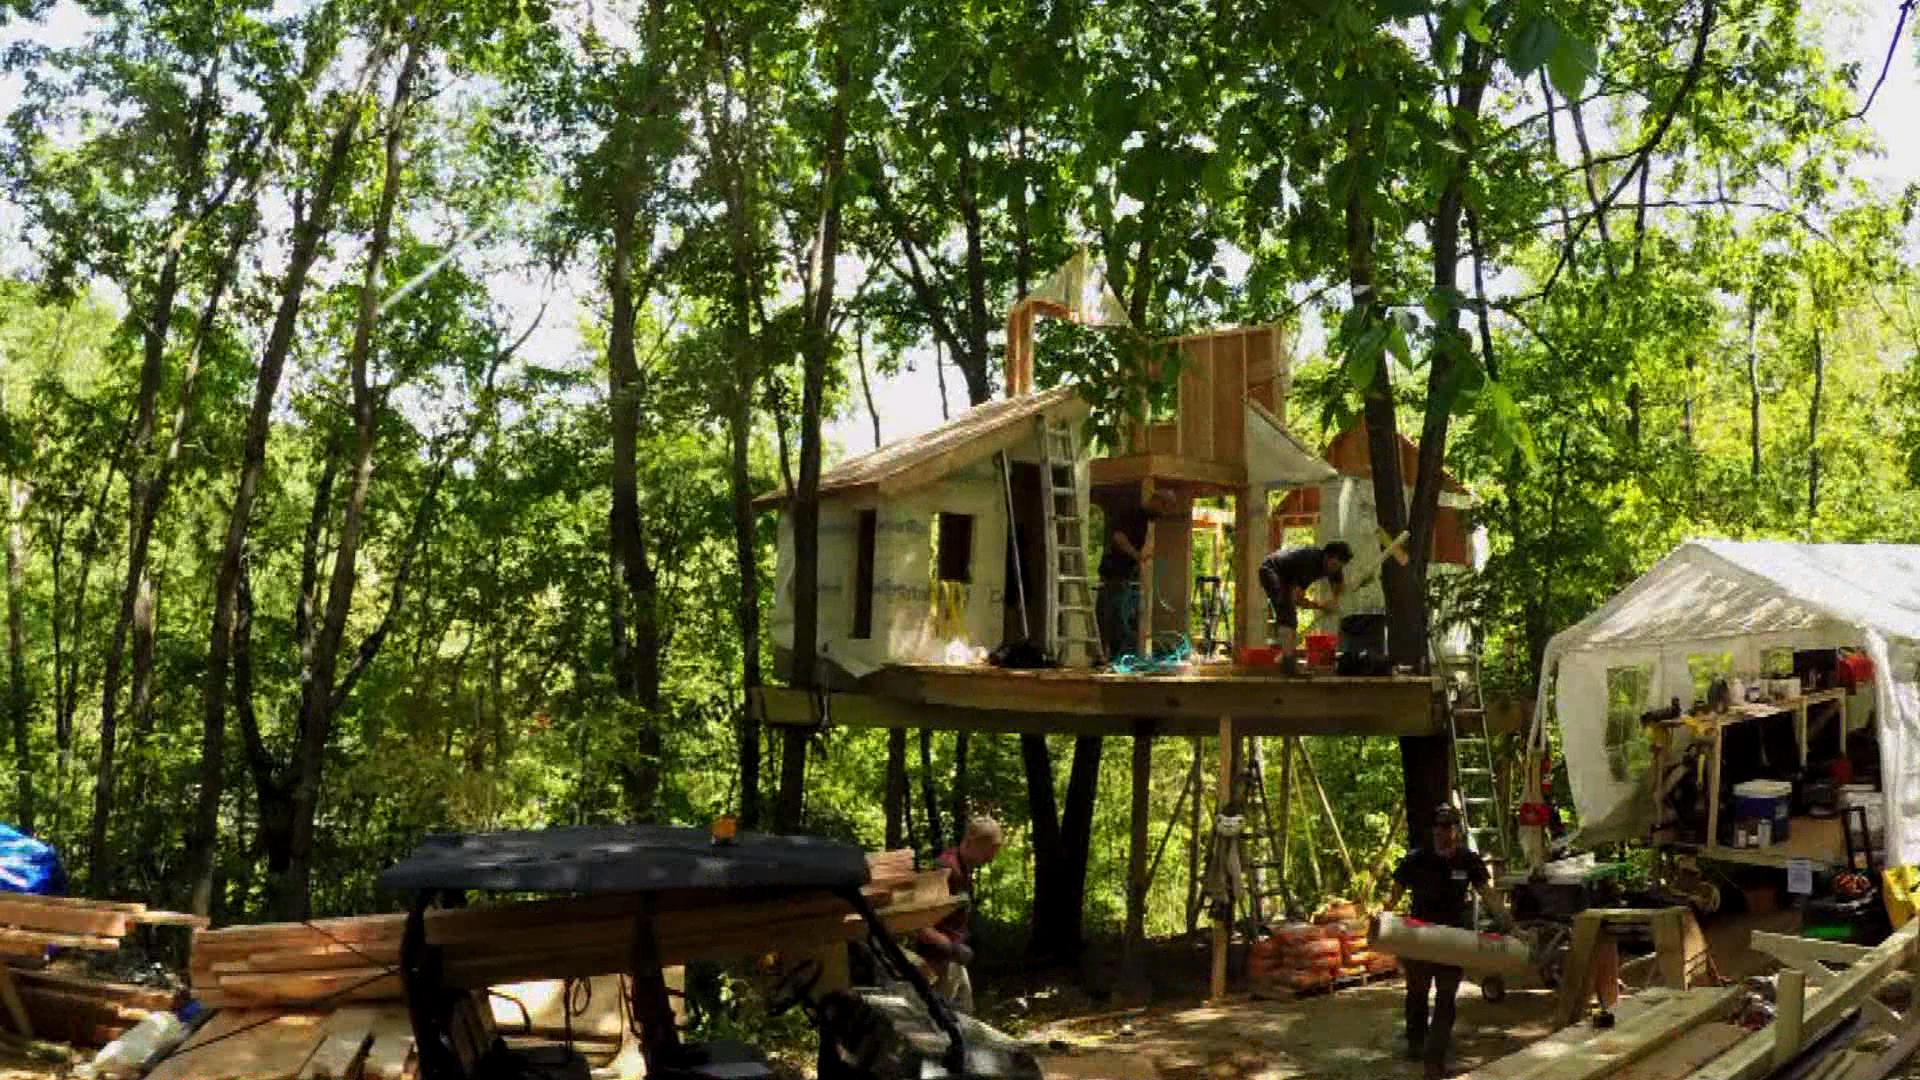 Behind the Design: Grace Vanderwall's Treehouse | Treehouse Masters on strange houses, fairy houses, tiny houses, amazing flowers, amazing treehouse homes, amazing mansions, unusual houses, cool houses, amazing trucks, amazing hotels, amazing bathrooms, amazing pools, amazing architecture, amazing treehouses of the world, prettiest houses, amazing kitchens, amazing chairs, crazy houses, awesome houses, goat houses,